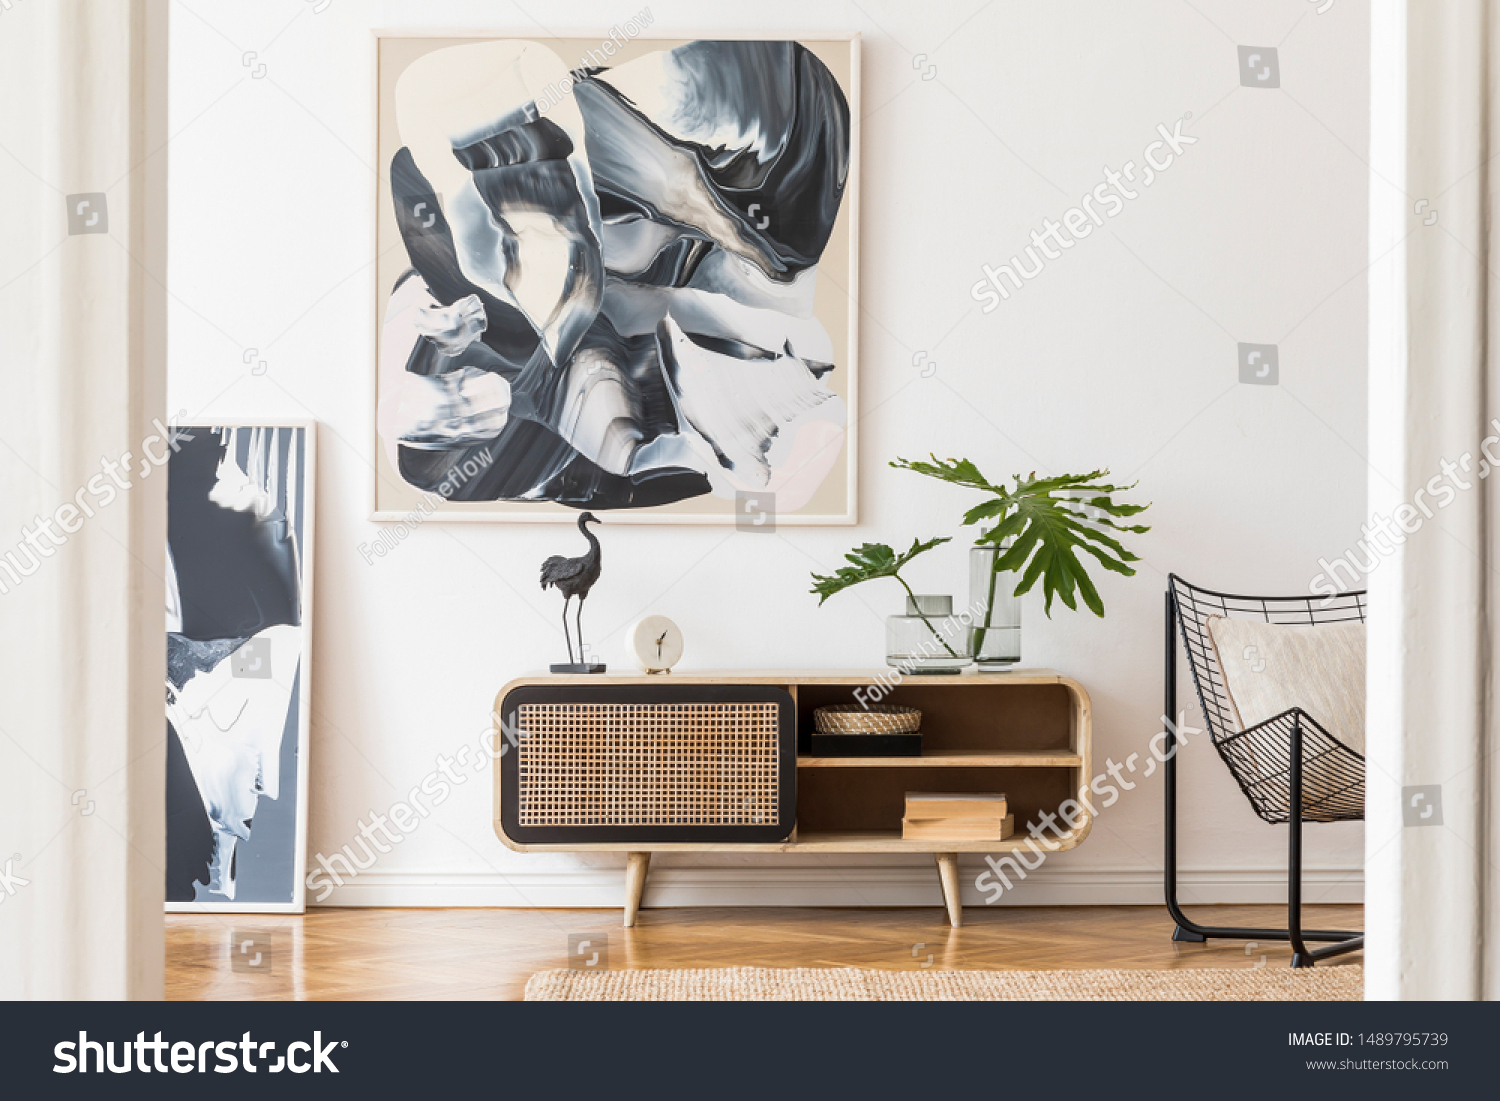 Modern design home interior of living room with wooden commode, design black armchair, tropical leafs and elegant accessories. Stylish home decor. Mock up abstract paintings on the wall. Template. #1489795739